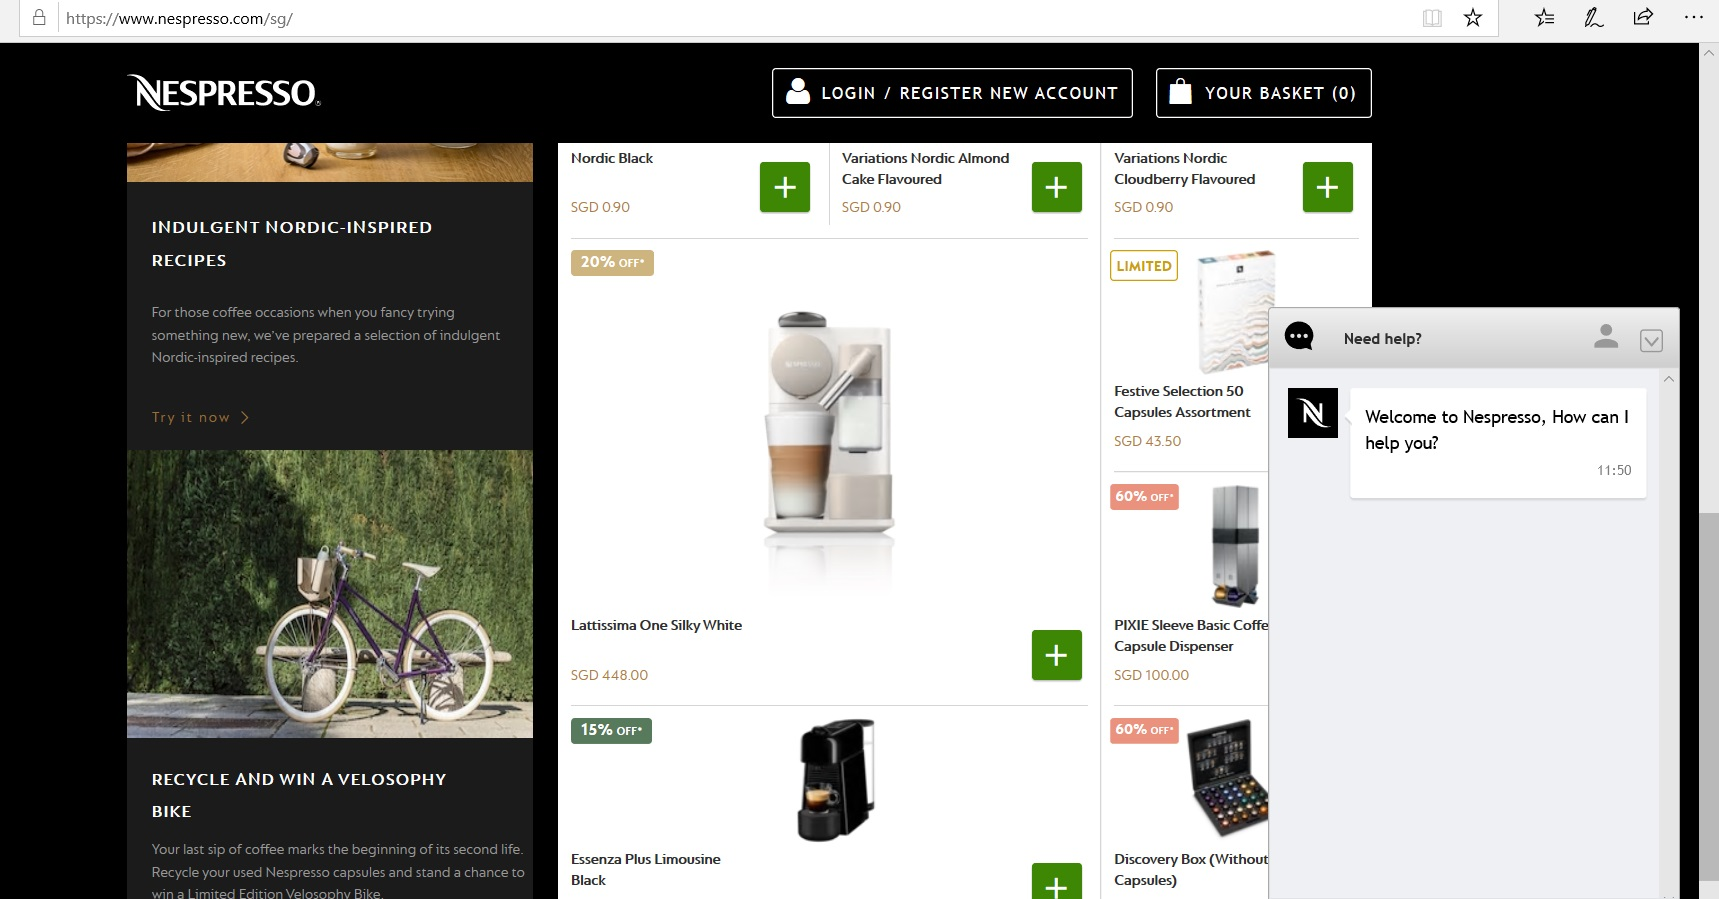 Deals section on Nespresso website.